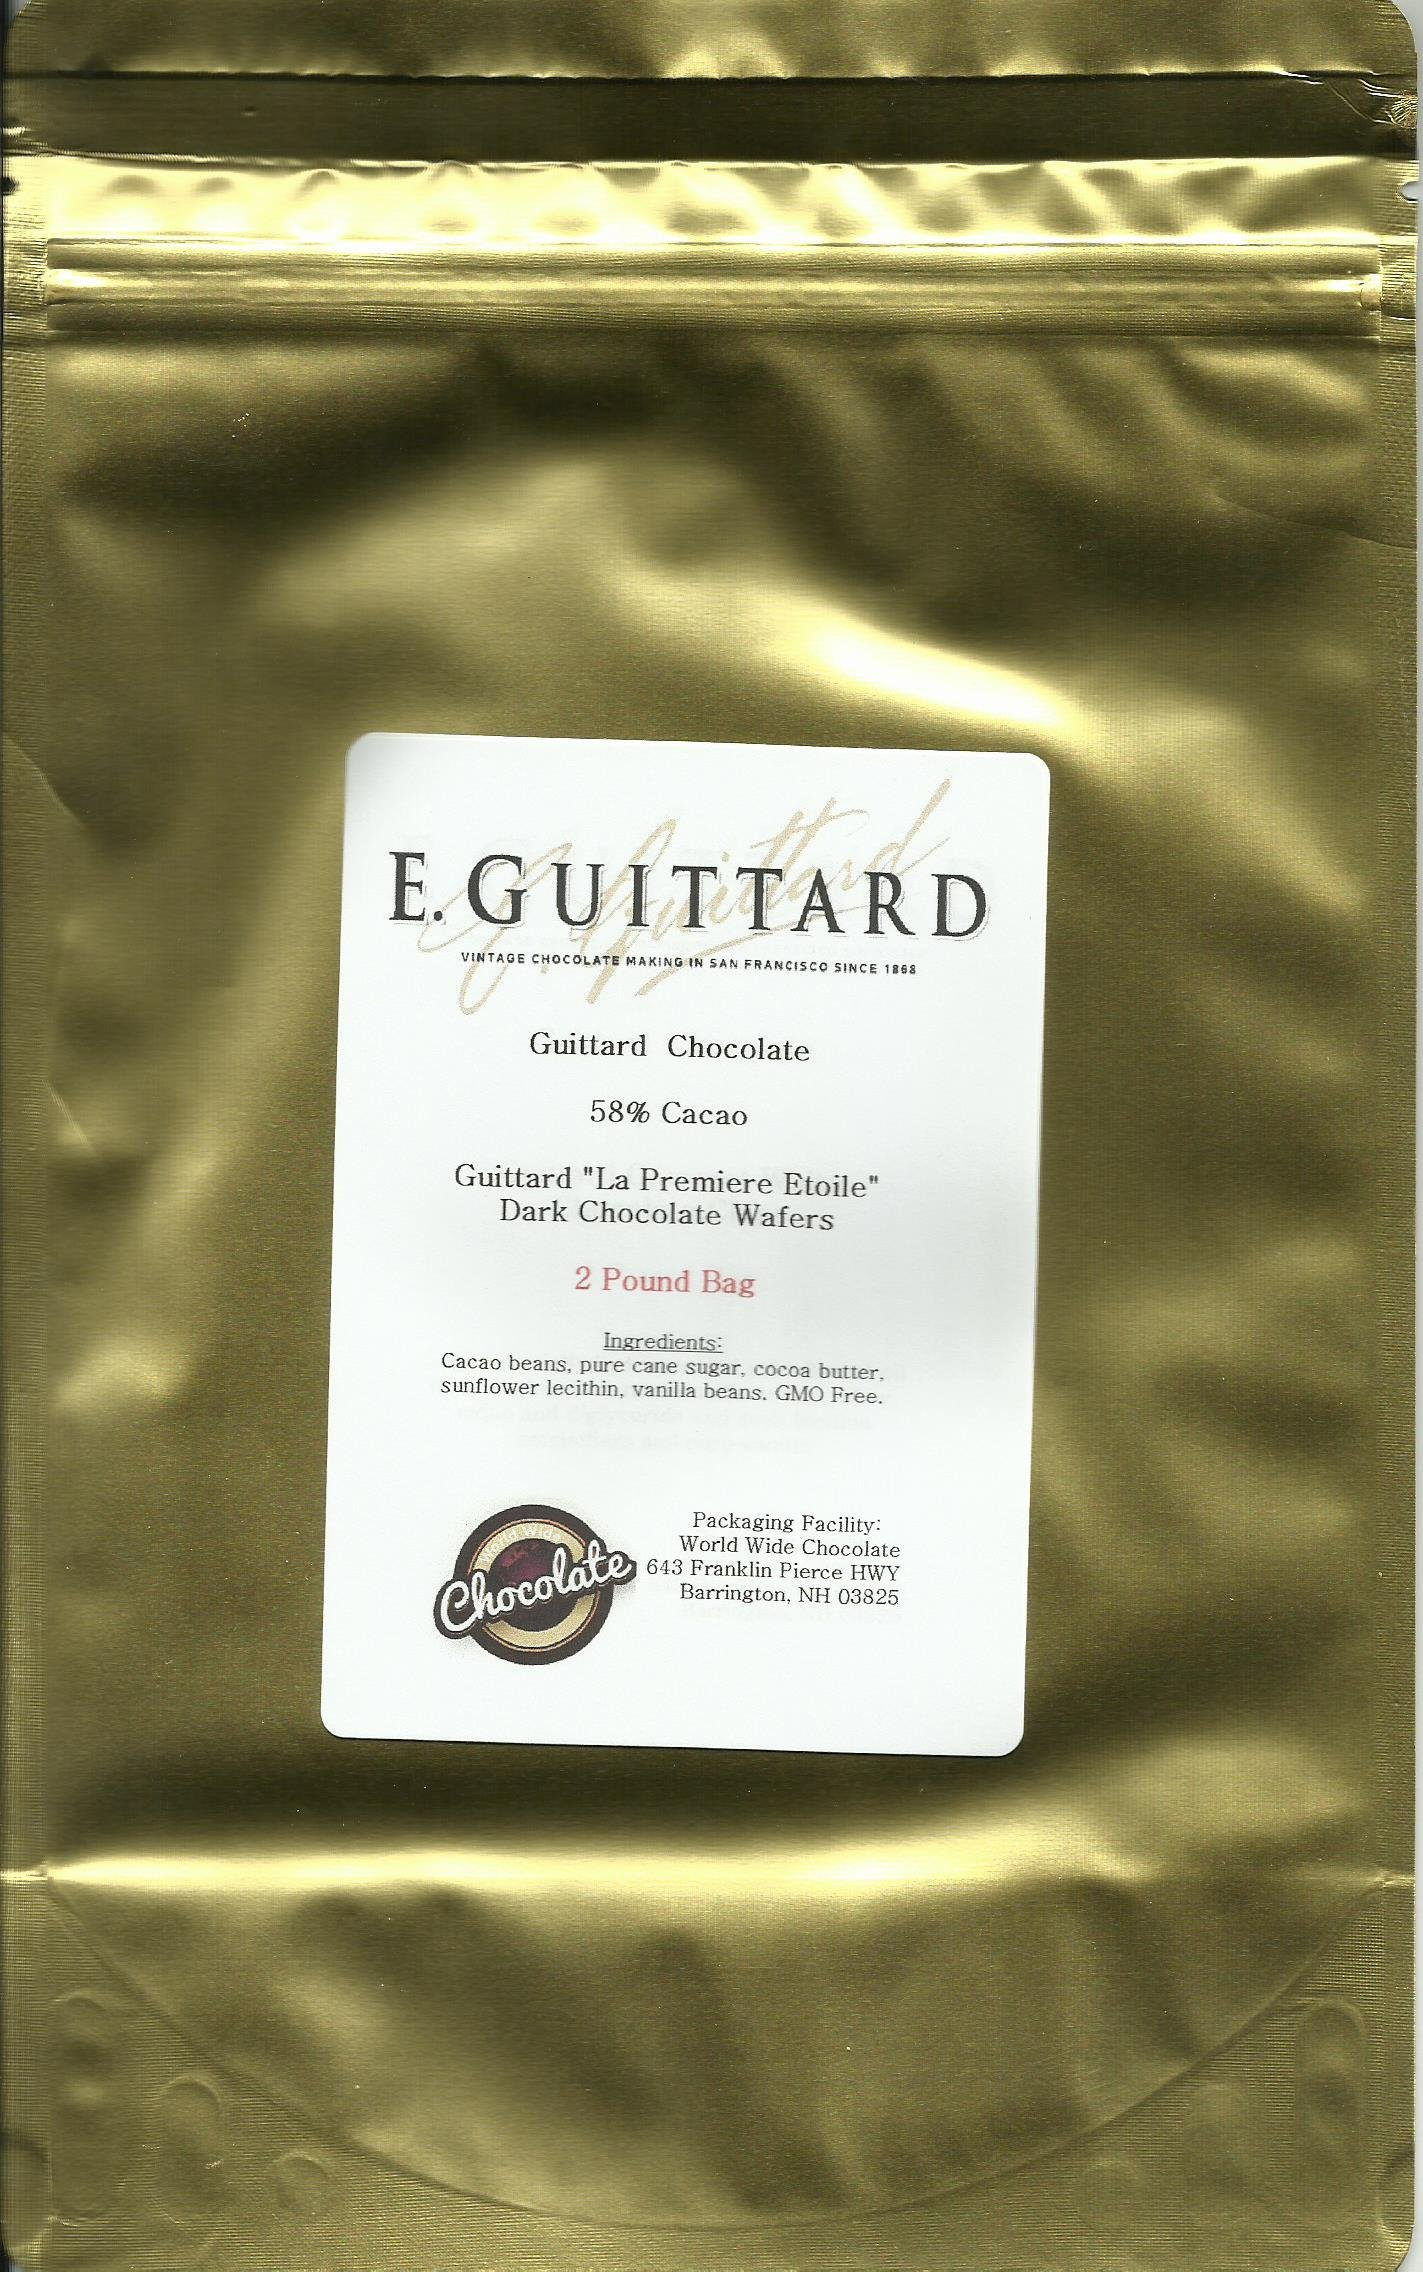 E. Guittard Chocolate - ''La Premiere Etoile'' Semisweet Dark Chocolate Wafers for Baking and Eating, 58% Cocoa, Gold Bag, 2 Pounds